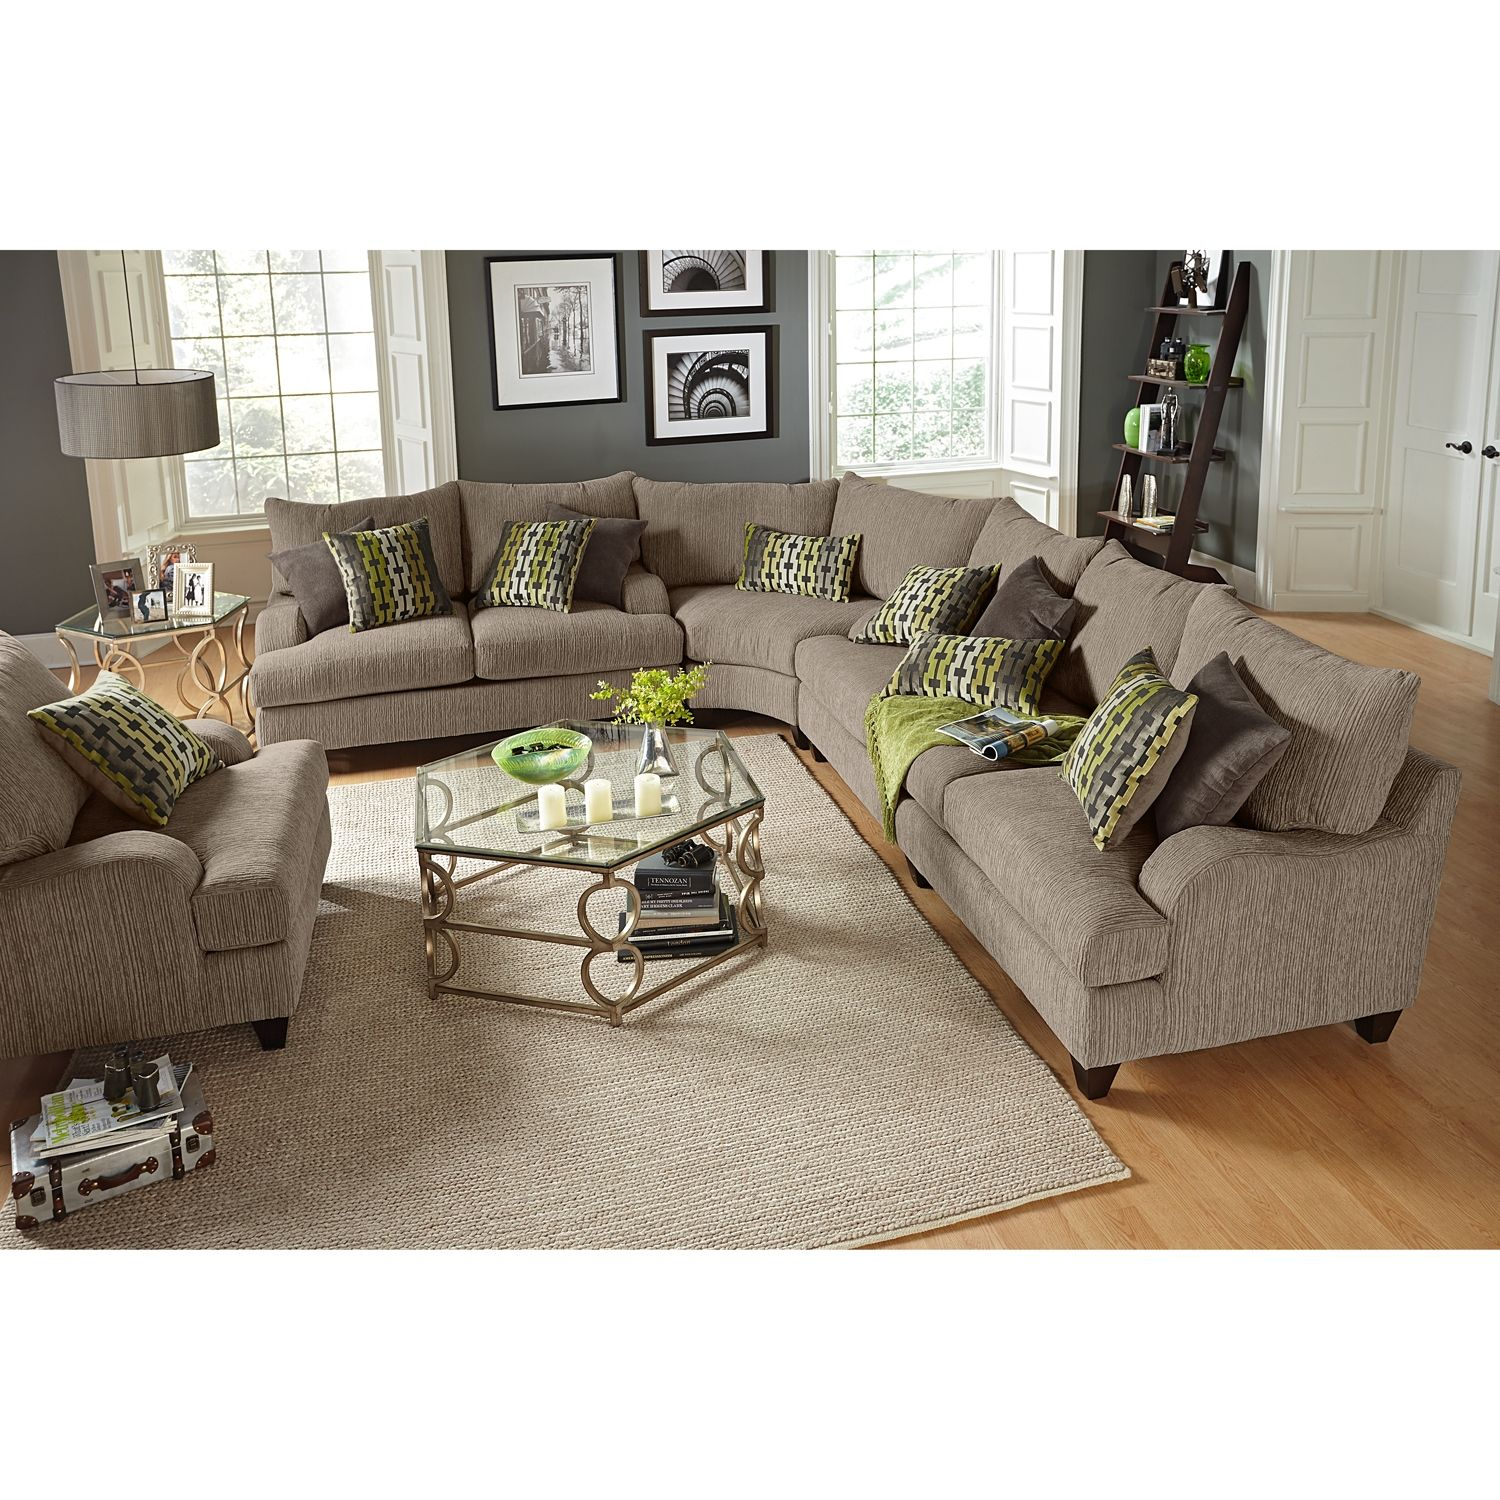 Santa Monica Ii 3 Piece Sectional Value City Furniture Minus The Lime Green Pillows